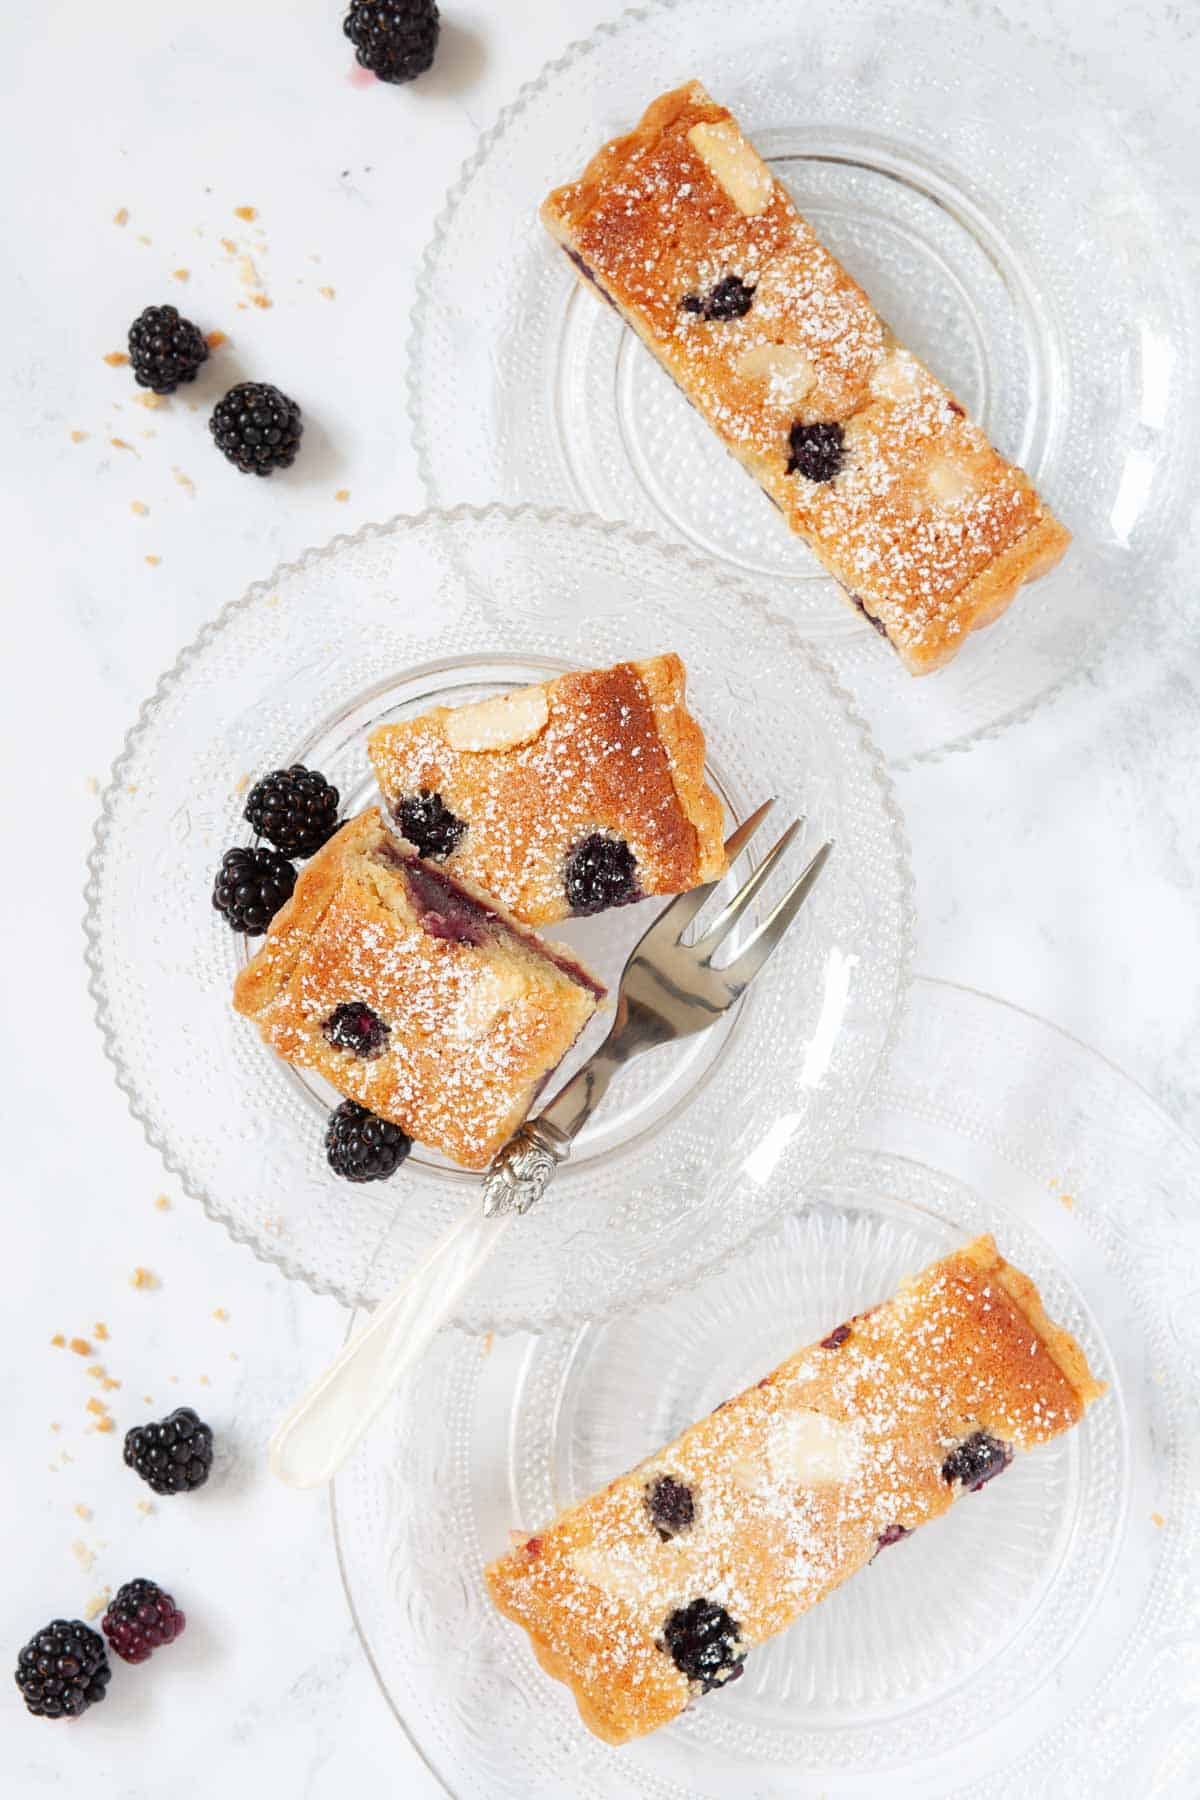 Slices of almond frangipane tart with blackberries on glass plates